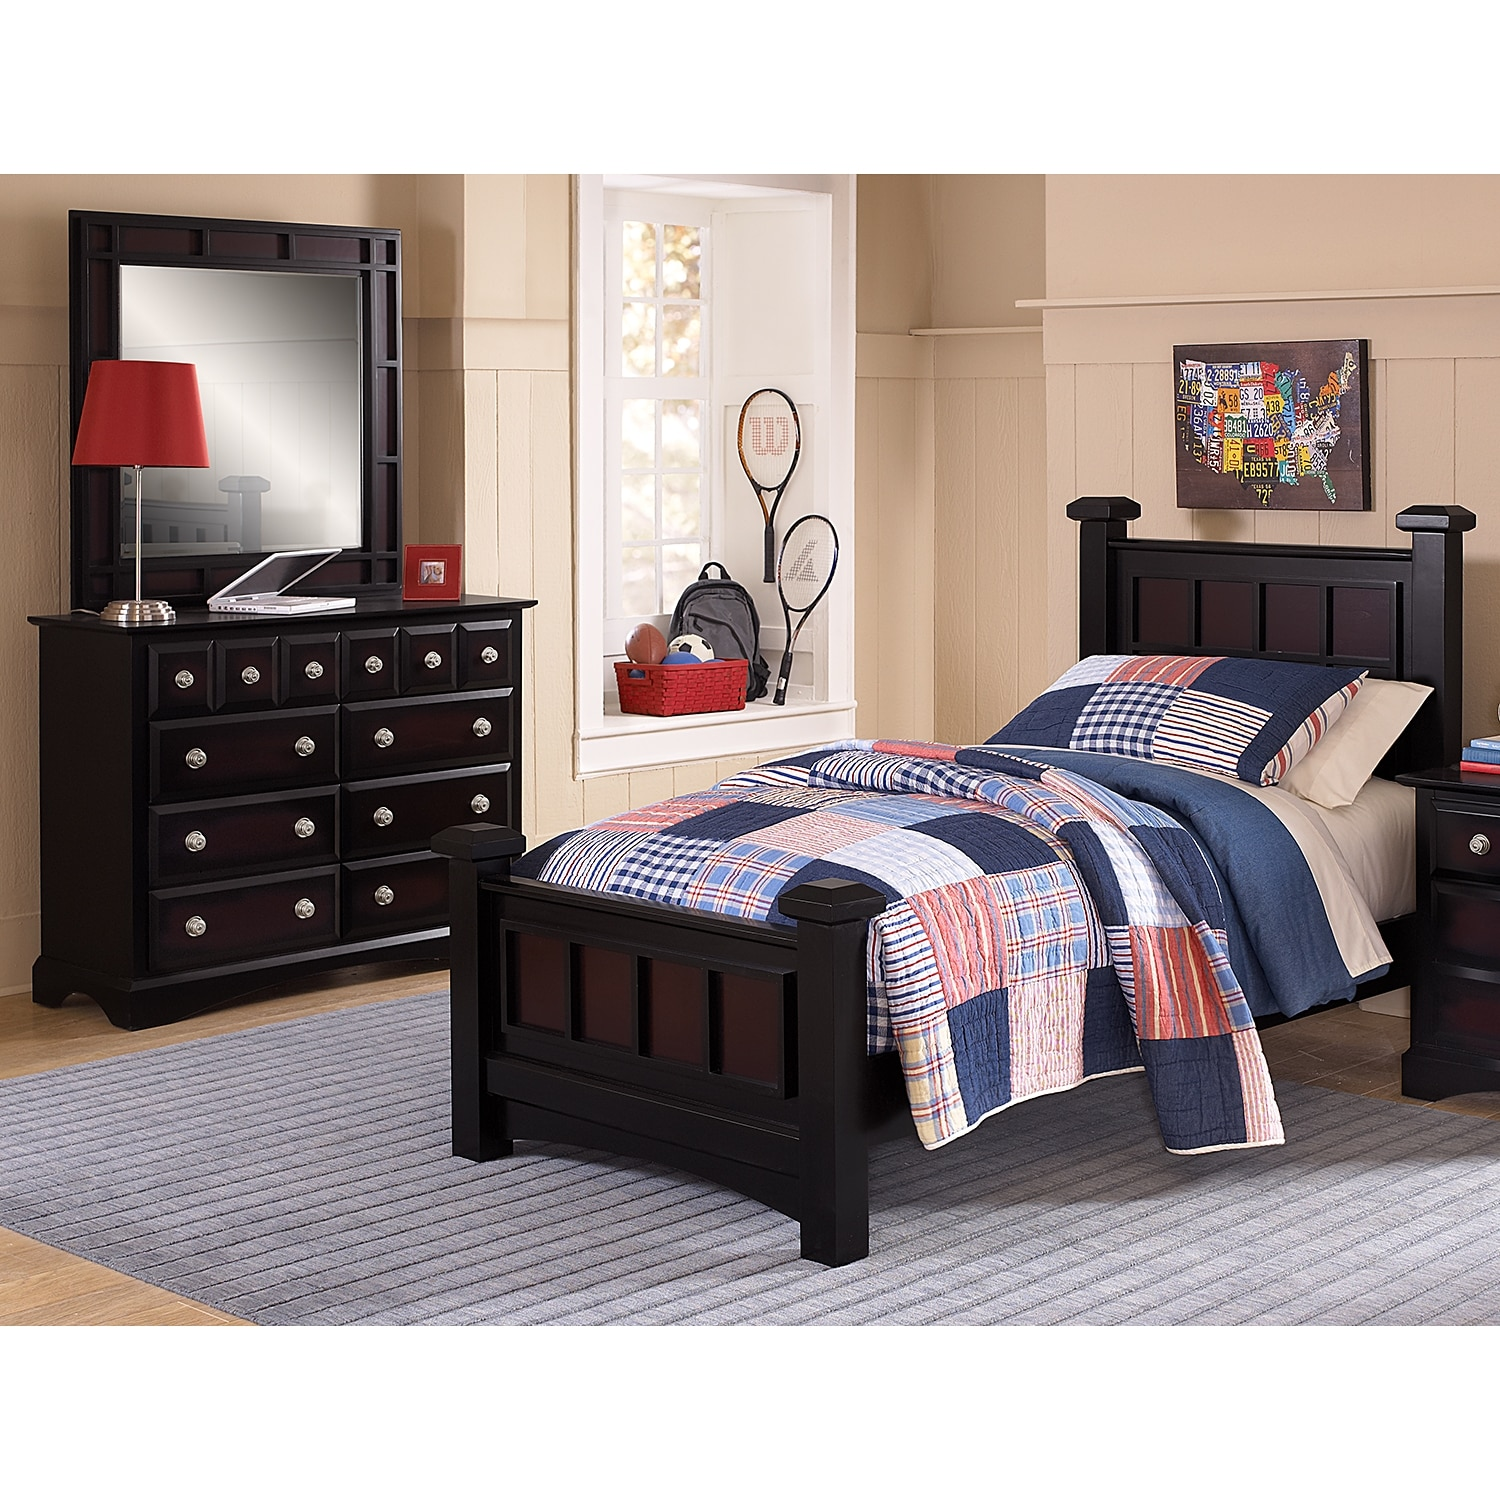 Winchester 5-Piece Full Bedroom Set